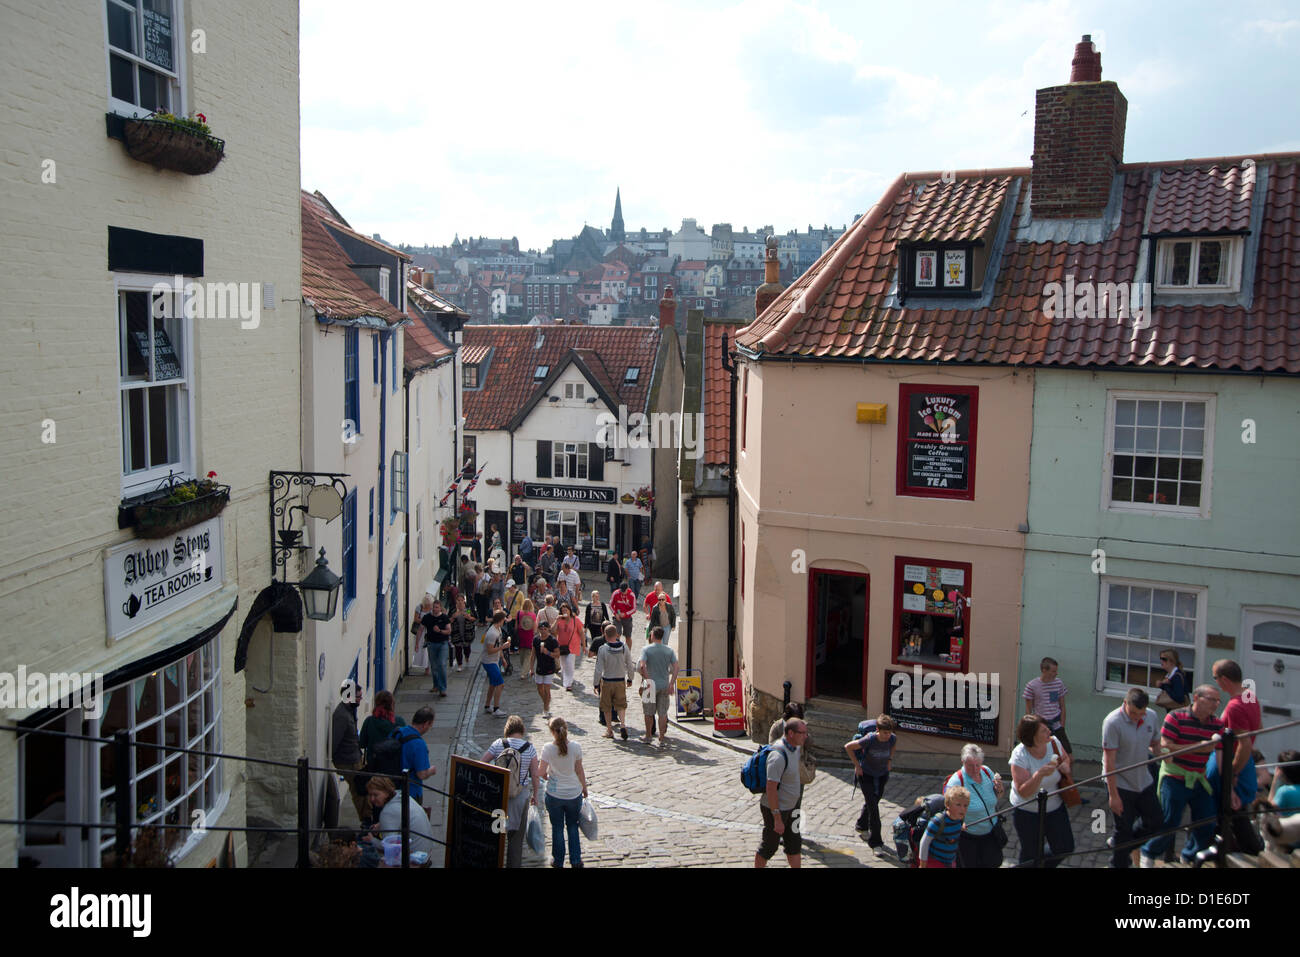 Tourists on the streets of Whitby on a summer day, Yorkshire, England, United Kingdom, Europe - Stock Image